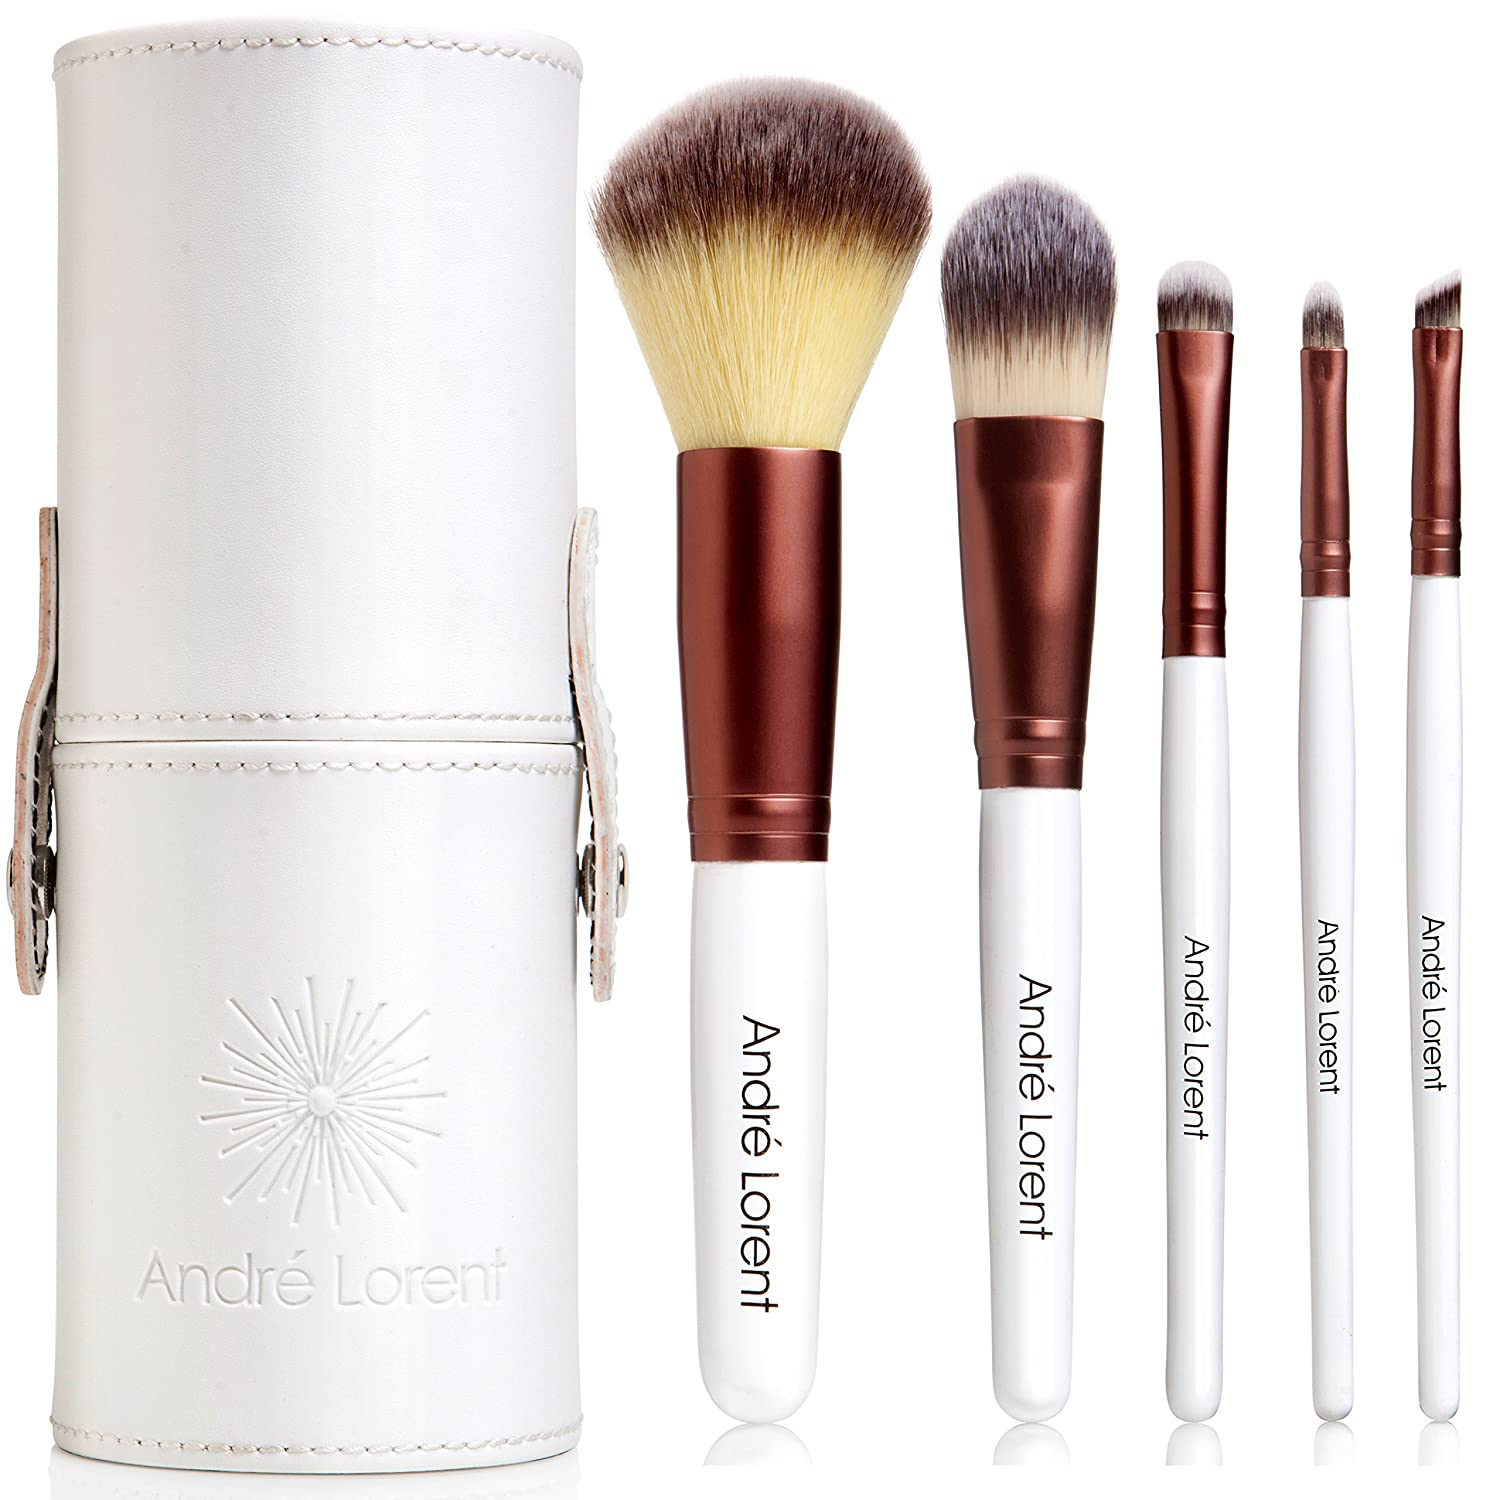 1) Andre Lorent Makeup Brush Set